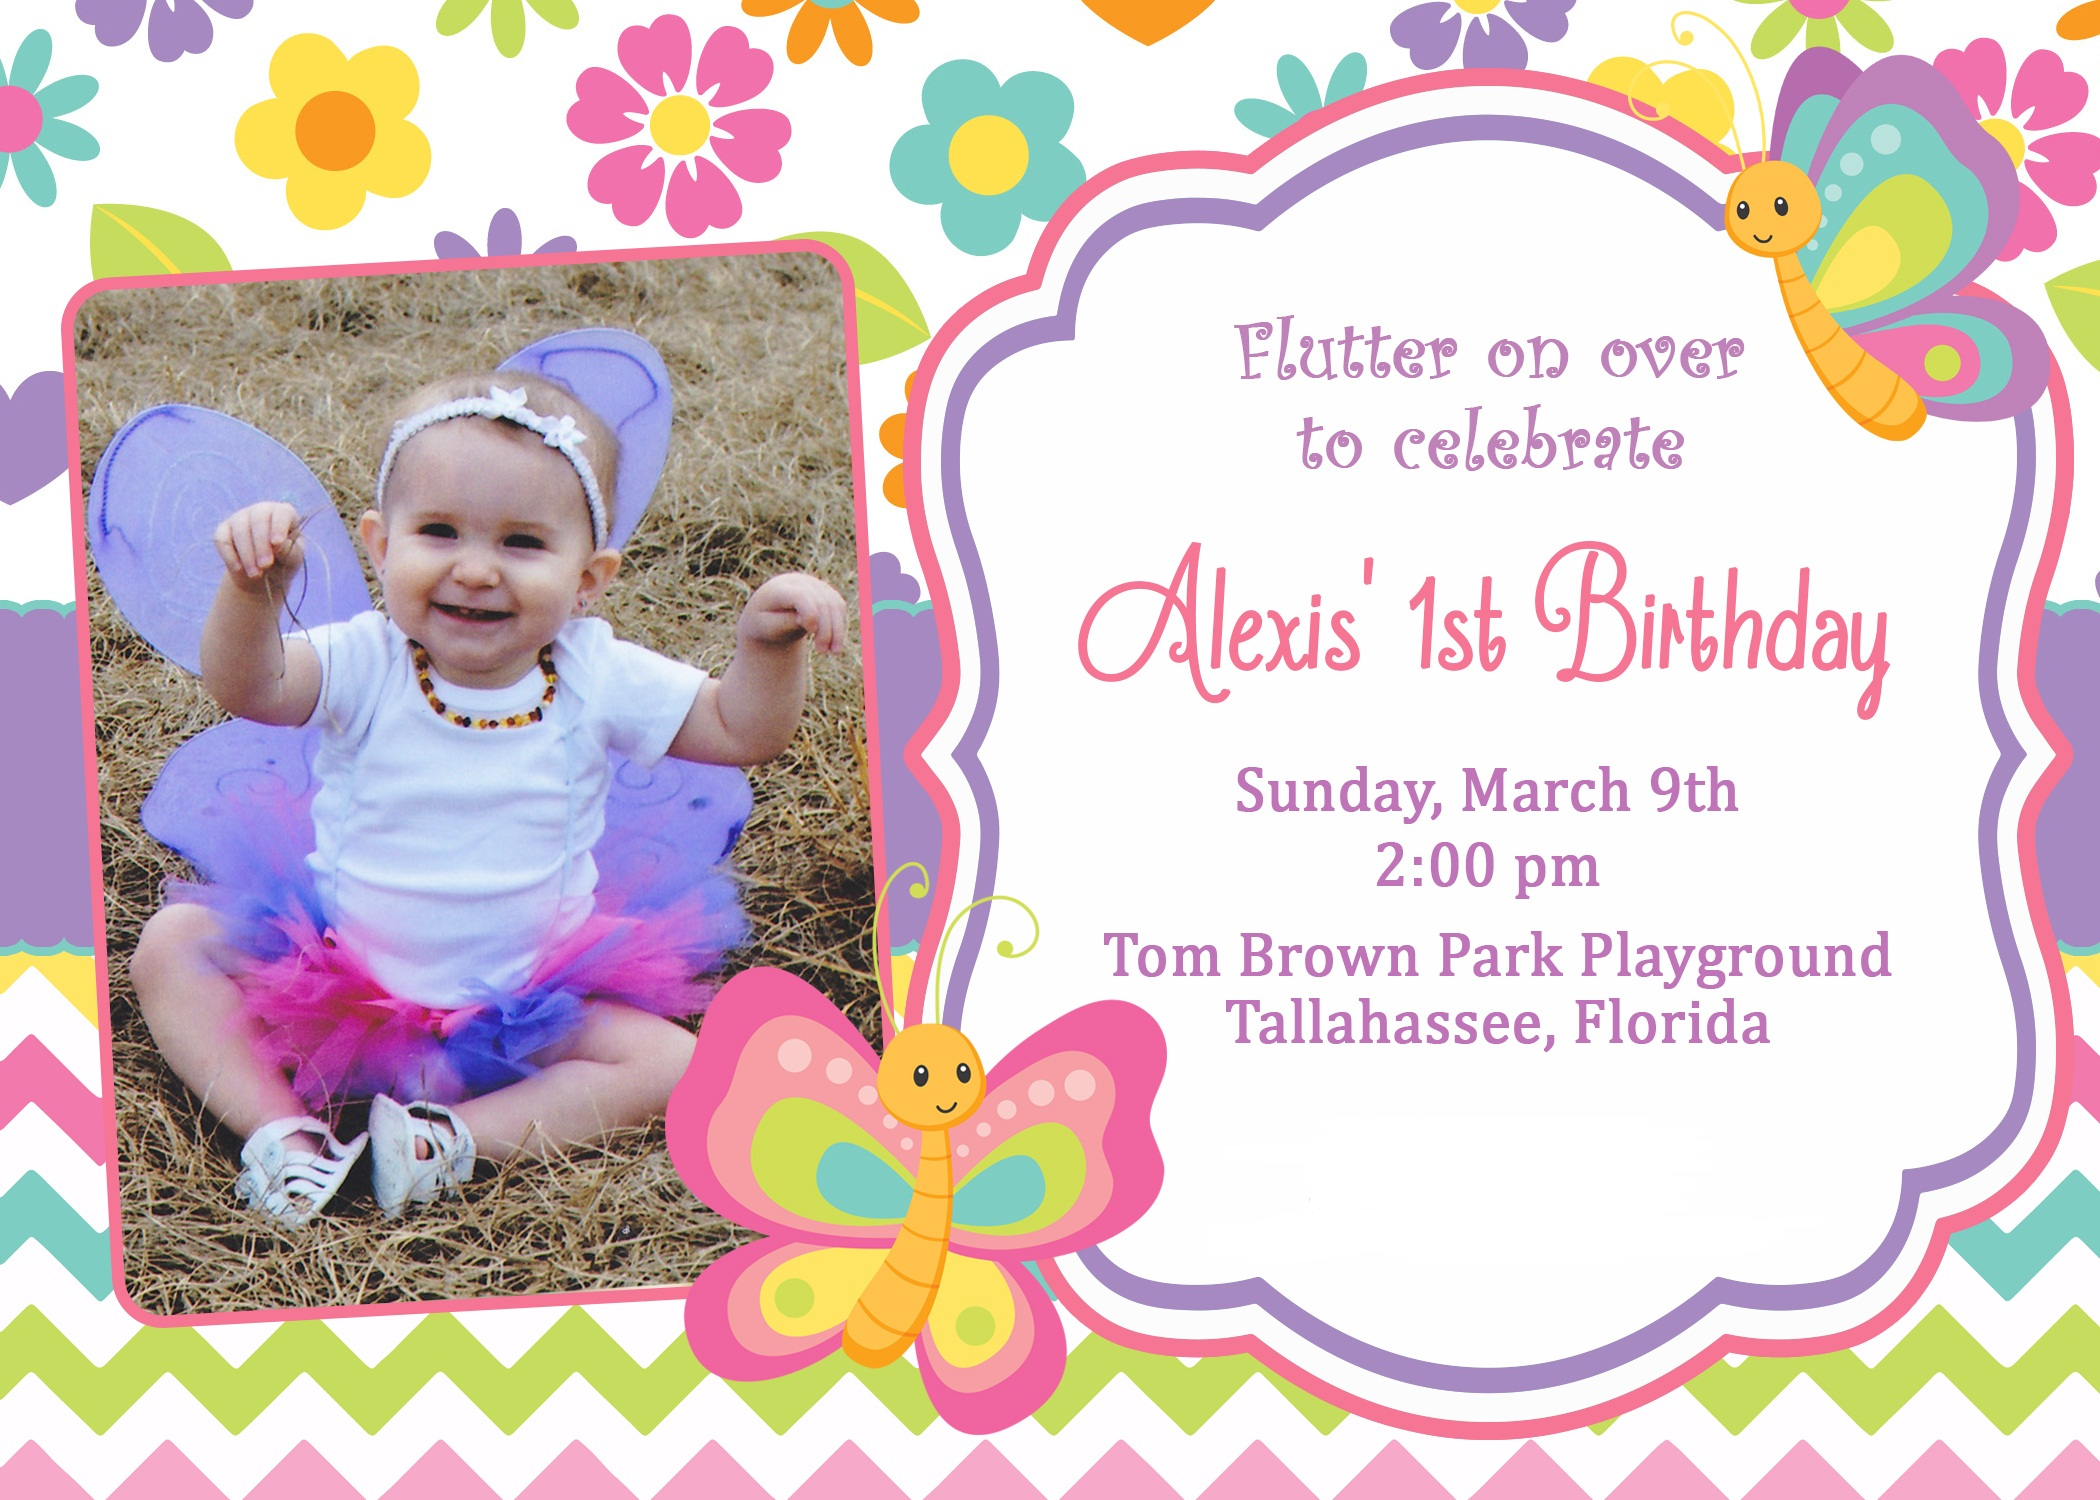 1st birthday butterfly photo invitations ; butterfly%2520themed%2520birthday%2520invitation%2520;%2520Butterfly-1St-Birthday-Invitations-for-a-surprising-birthday-Invitation-design-with-surprising-layout-1